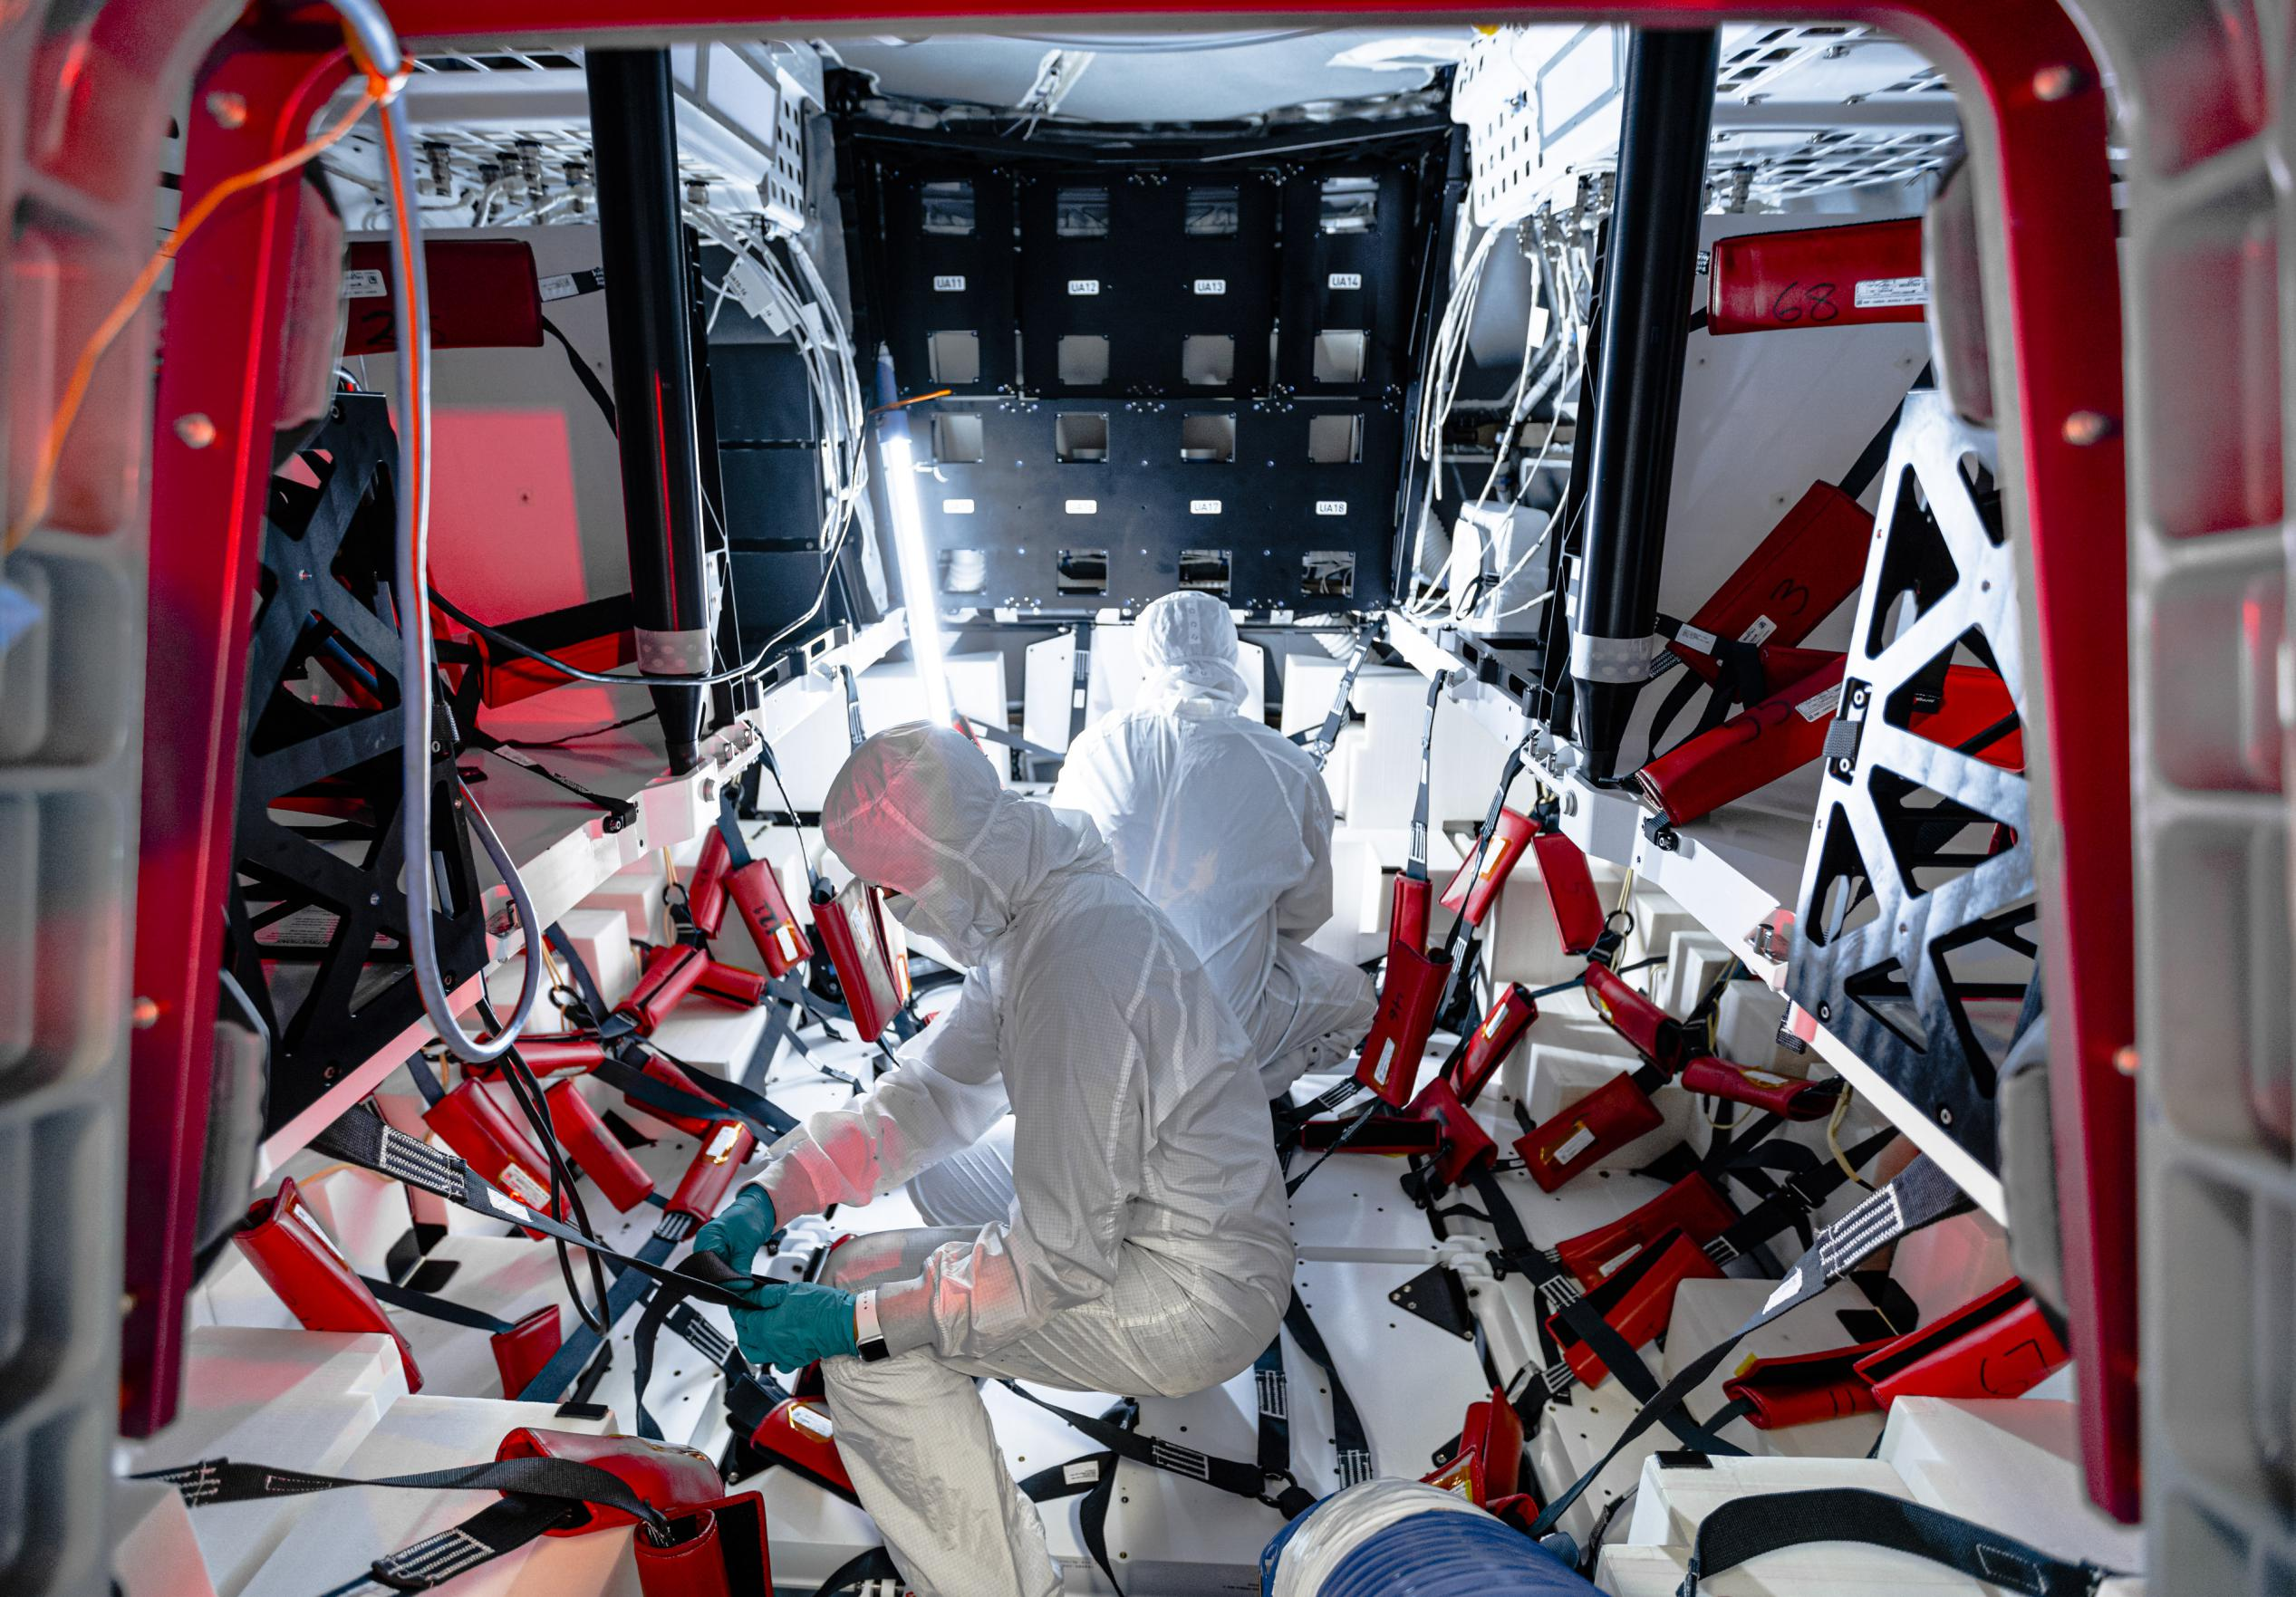 CRS-21 Cargo Dragon 2 Hawthorne Oct 2020 (SpaceX) interior 1 (c)